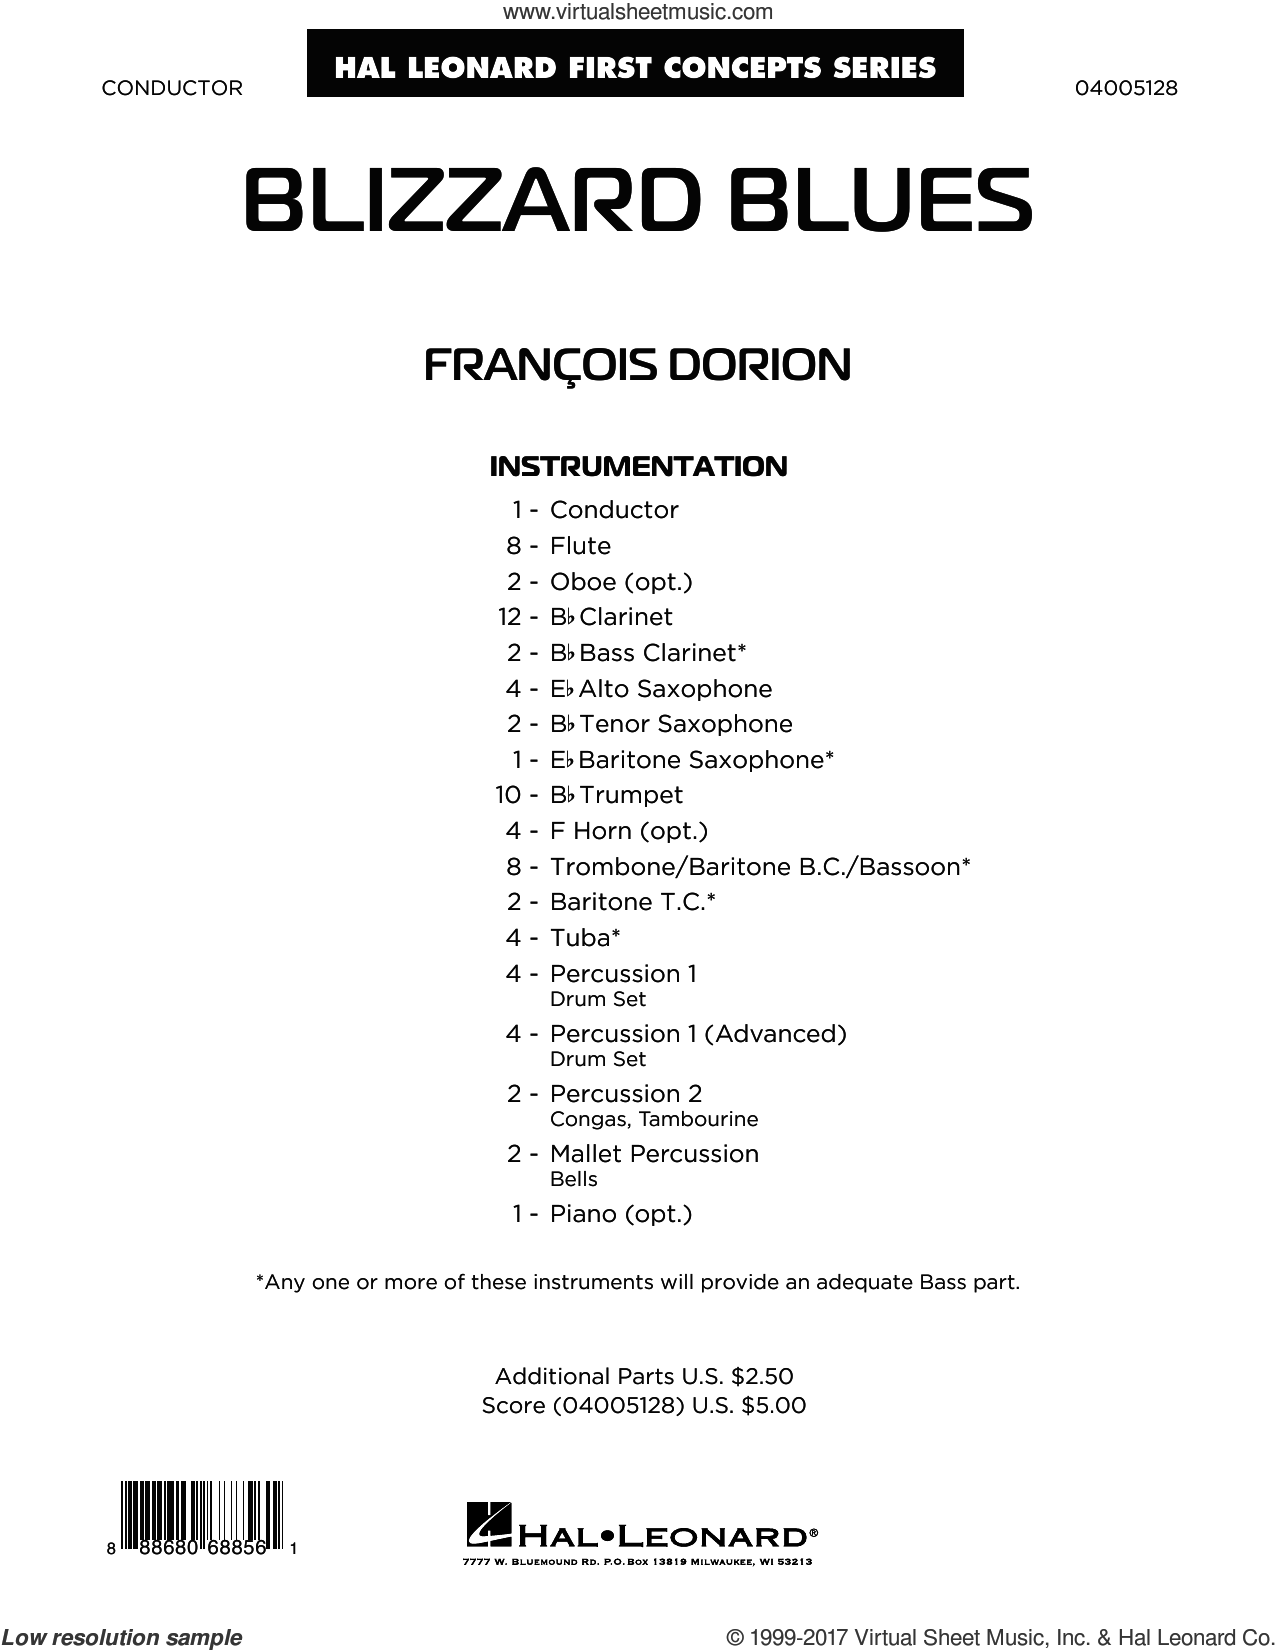 Dorion - Blizzard Blues sheet music (complete collection) for concert band